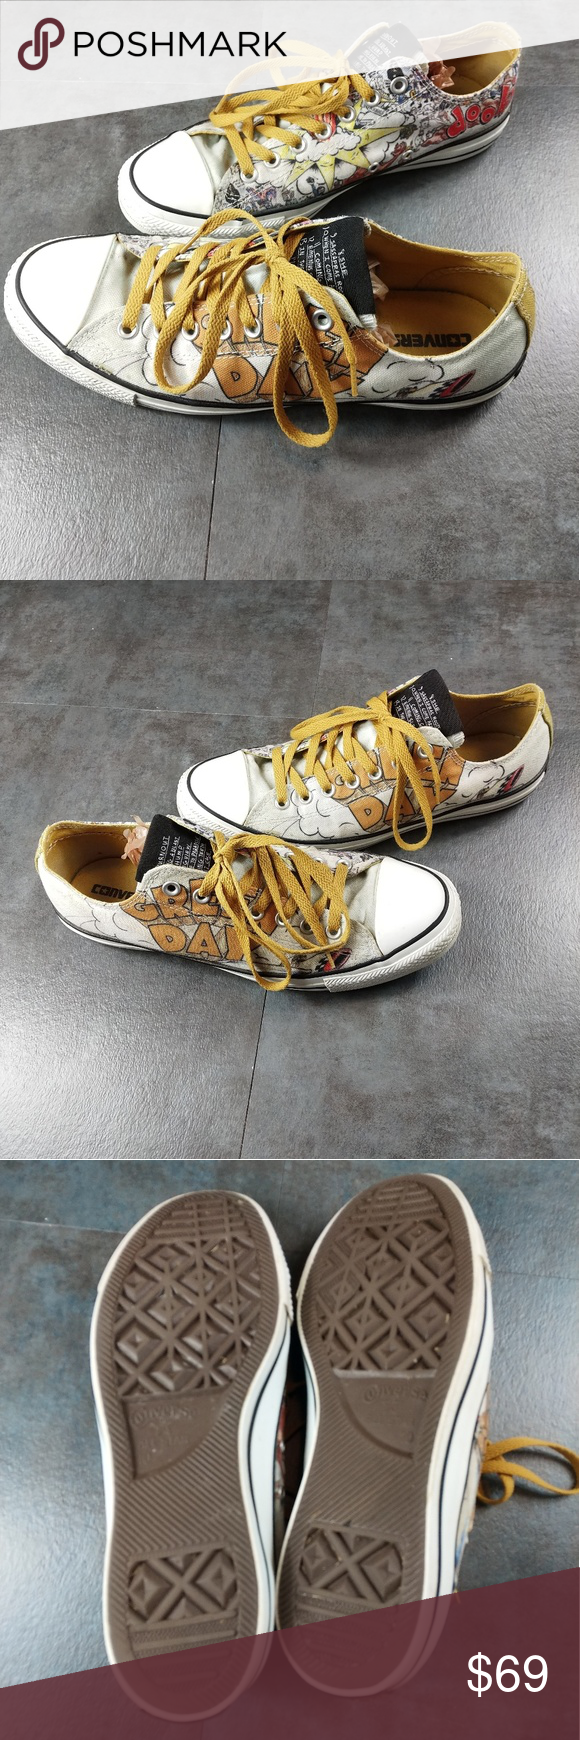 Converse Green Day Dookie Grunge Classic Sneakers Limited Special Edition Green Day Dookie Album Art Low Top Classic Chuck's In Great Pre Owned Condition that is detailed in photos. There is some small debris and dirt from normal wear but no flaws  Canvas Upper Yellow interior and shoestrings Original album art on the shoe and song list on the tounge   Unisex Size 10 men or 12 women Converse Shoes Sneakers #lowalbum Converse Green Day Dookie Grunge Classic Sneakers Limited Special Edition Green #lowalbum